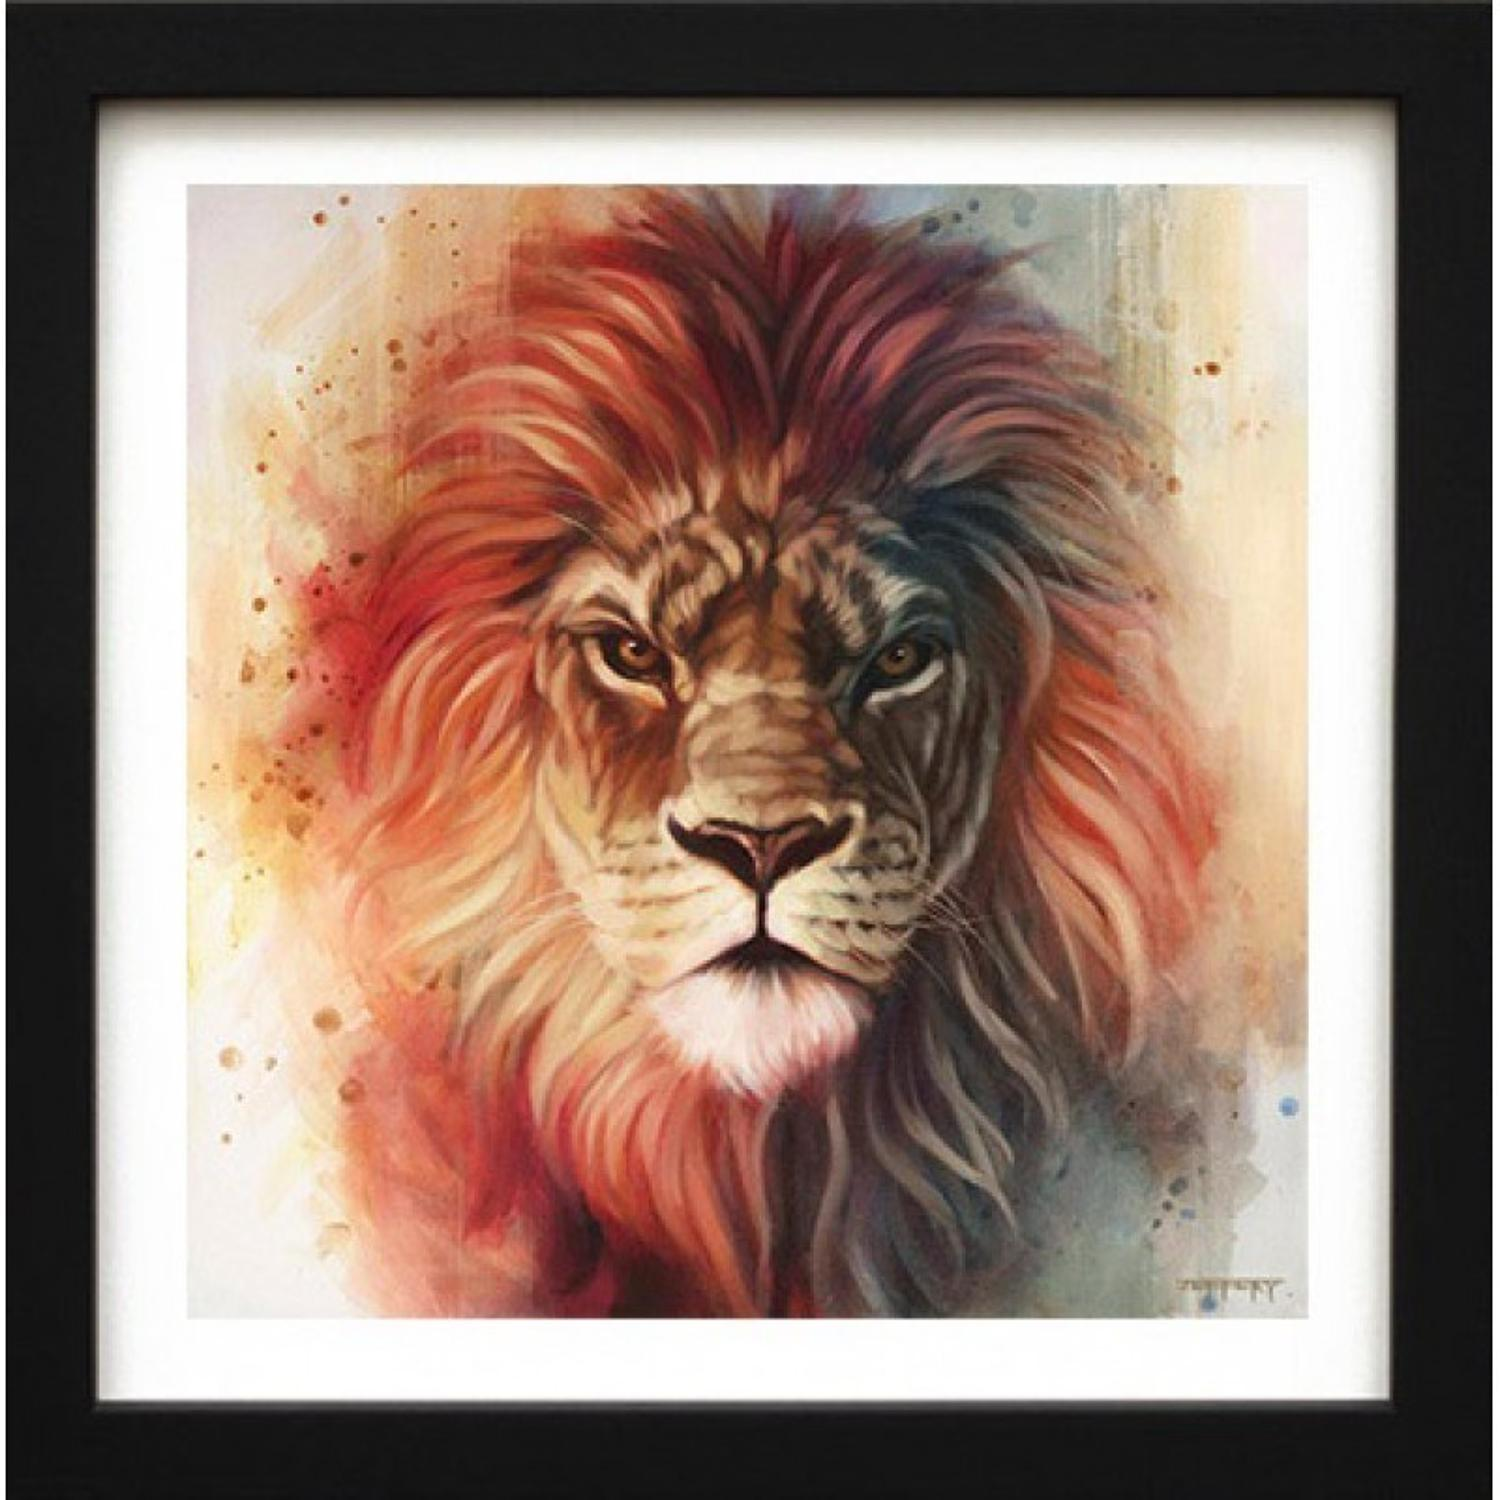 King Of The Jungle-Framed Canvas Art Print by Ben Jeffrey